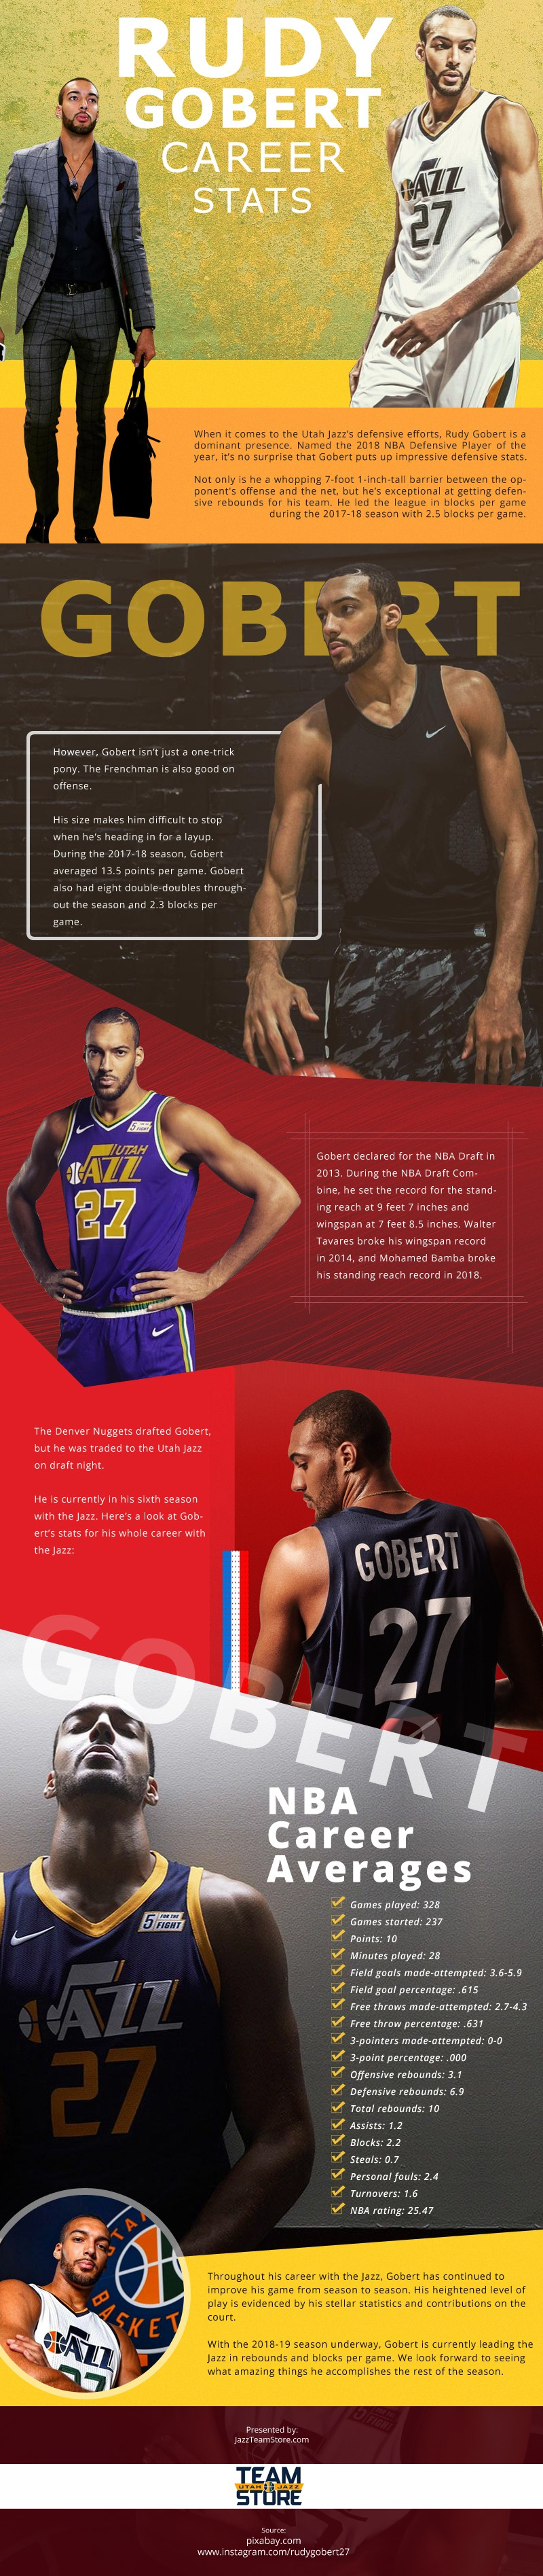 Rudy Gobert Career Stats [infographic]